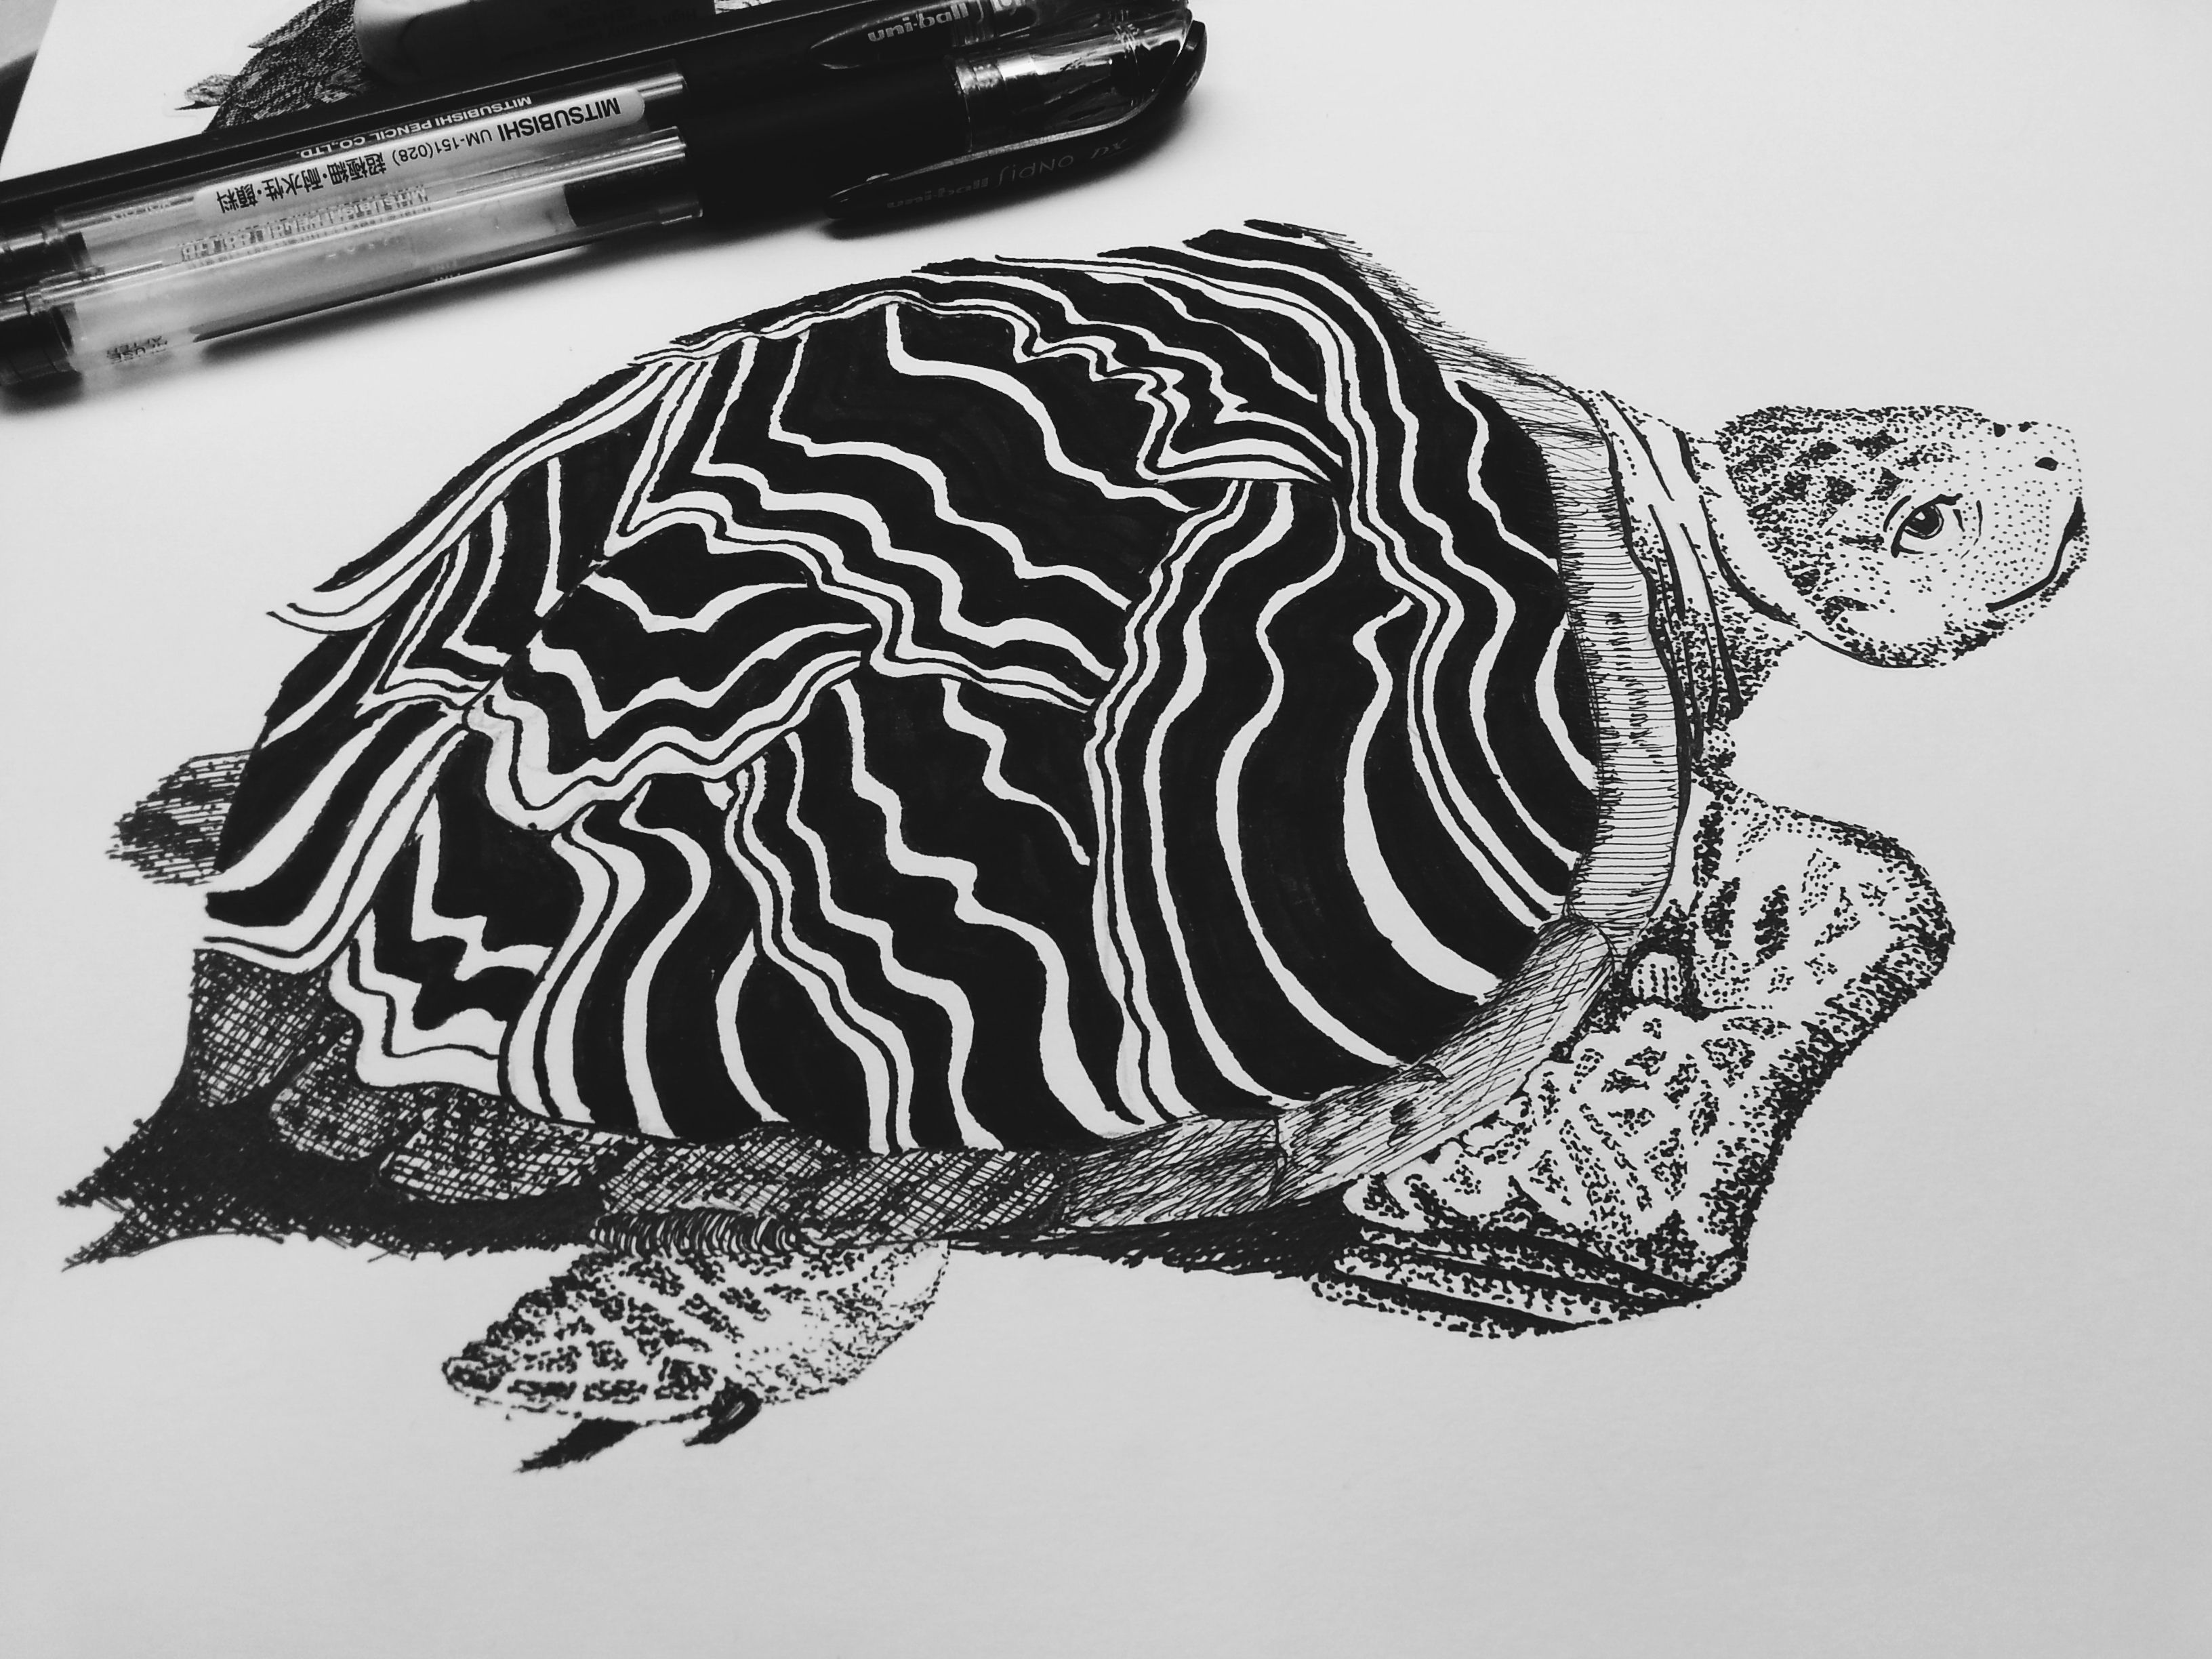 Turtle with graphic shell pattern - pen drawing